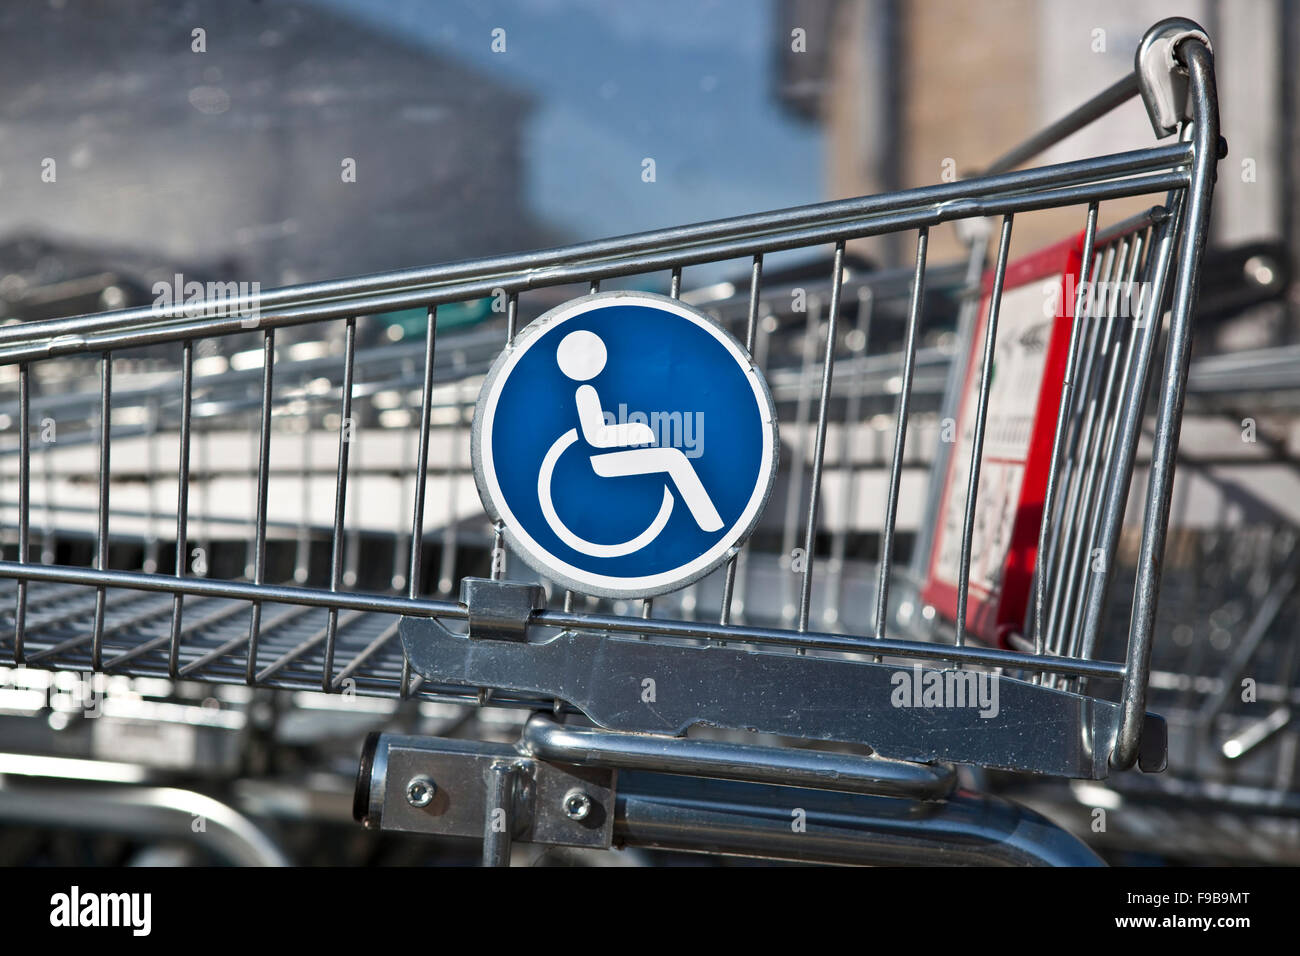 DISABLED SHOPPING TROLLEY - Stock Image